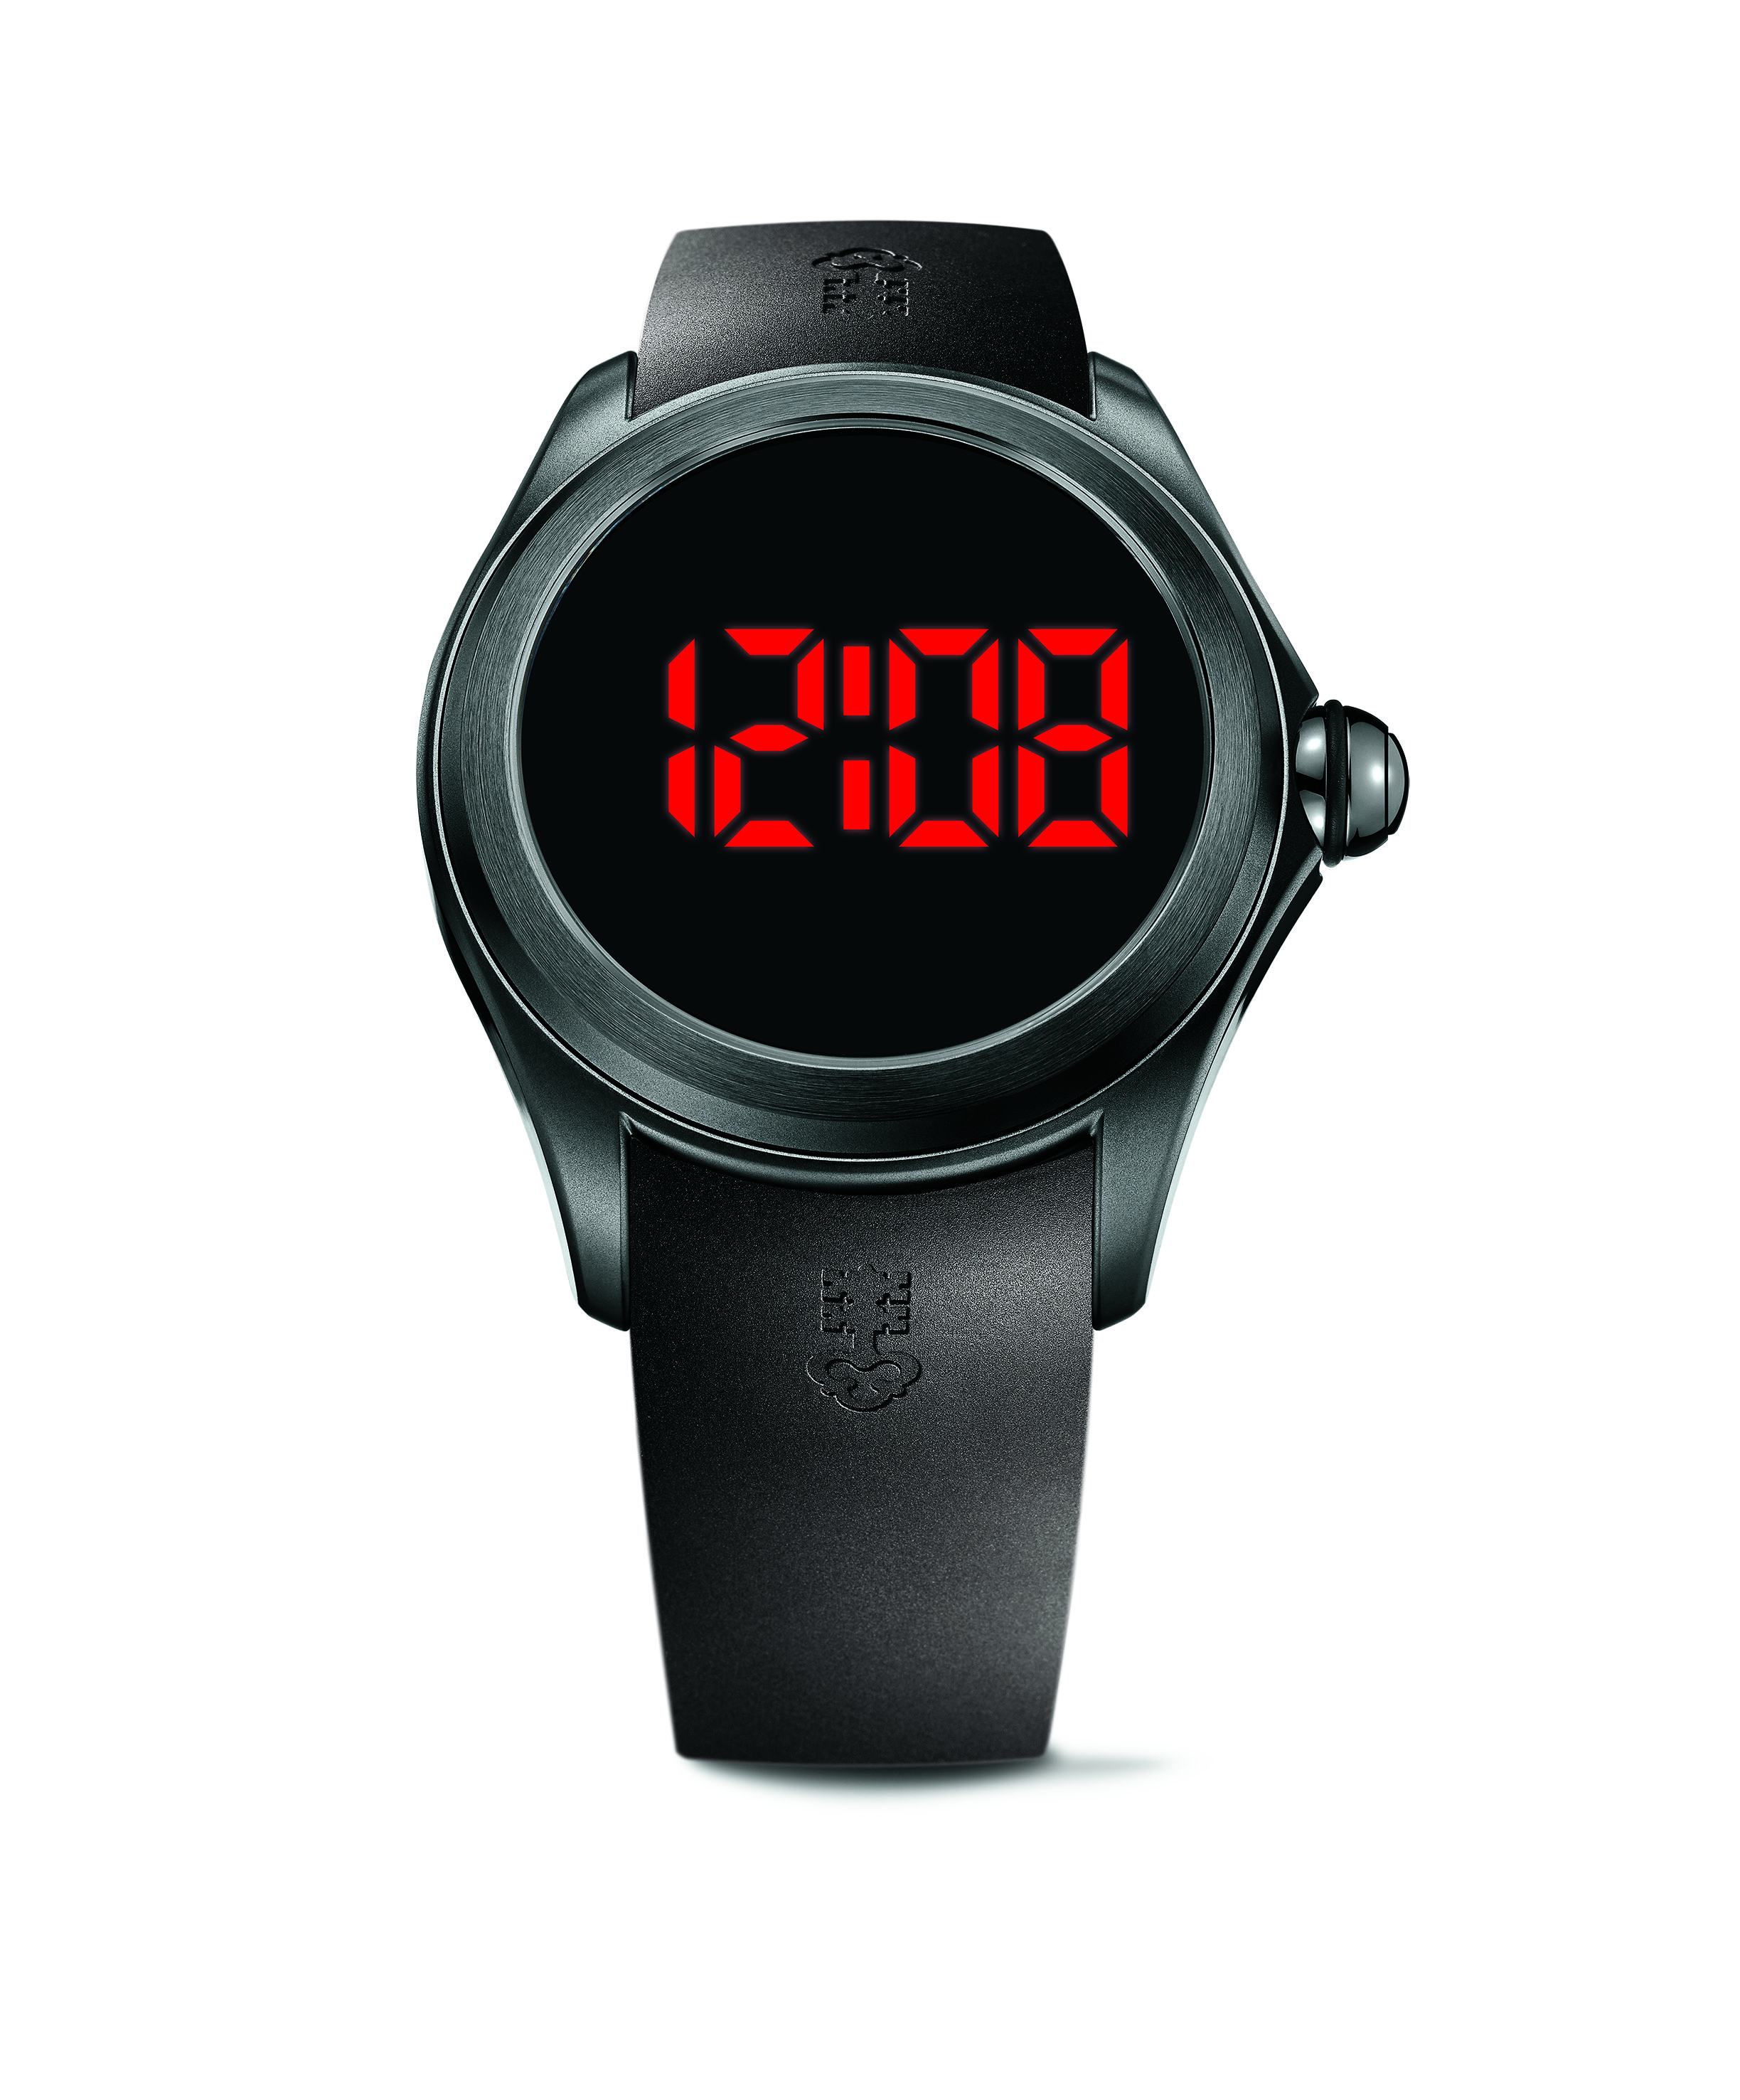 Gagnez une Corum Bubble 47 Digital